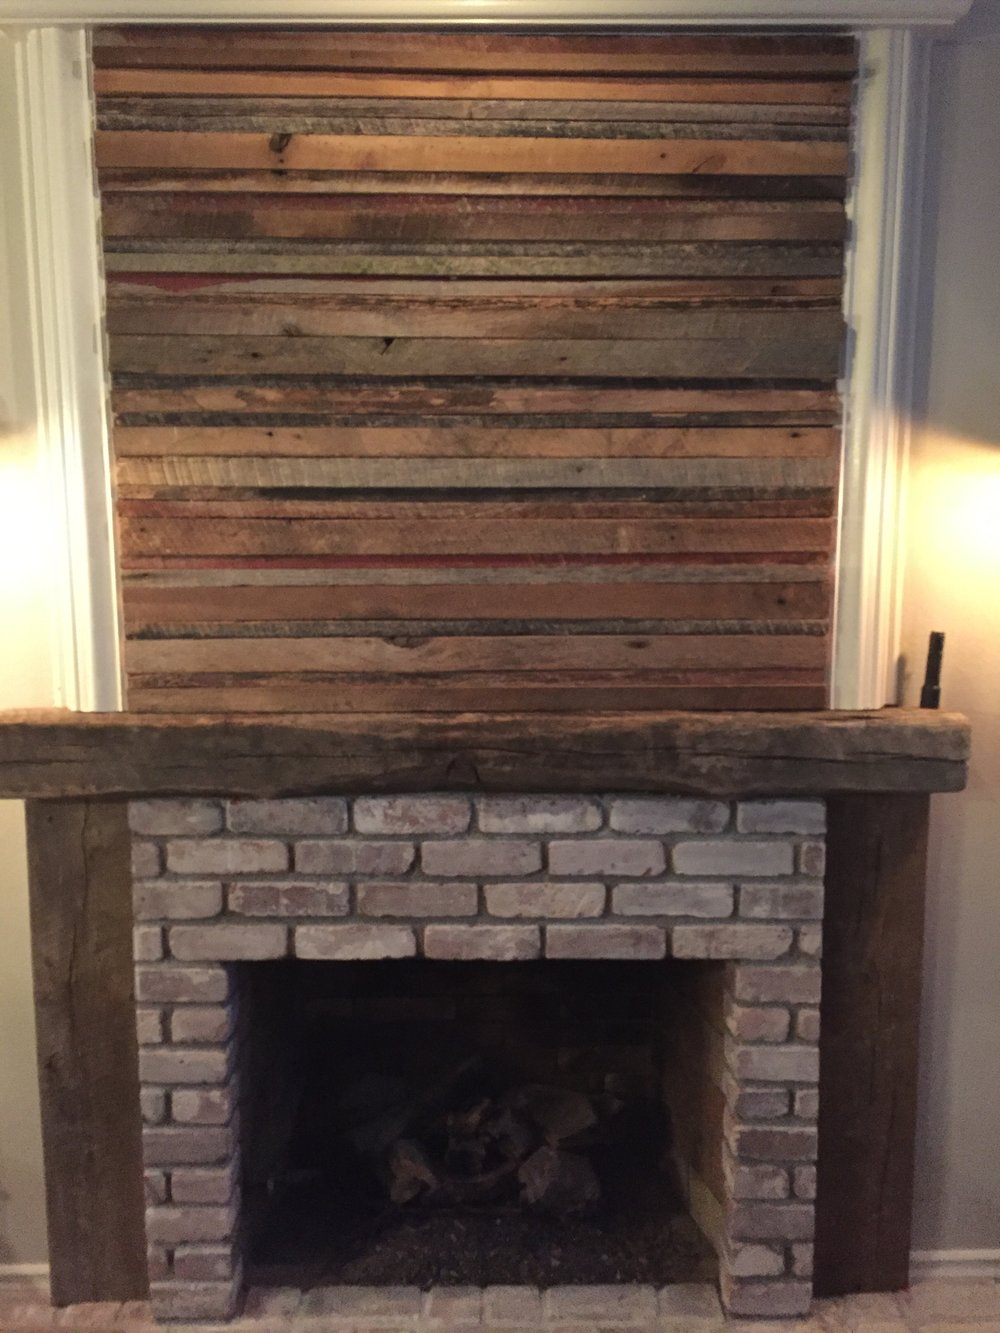 This wonderful and unique fireplace is a customer build using reclaimed wood paneling and a reclaimed beam mantel.